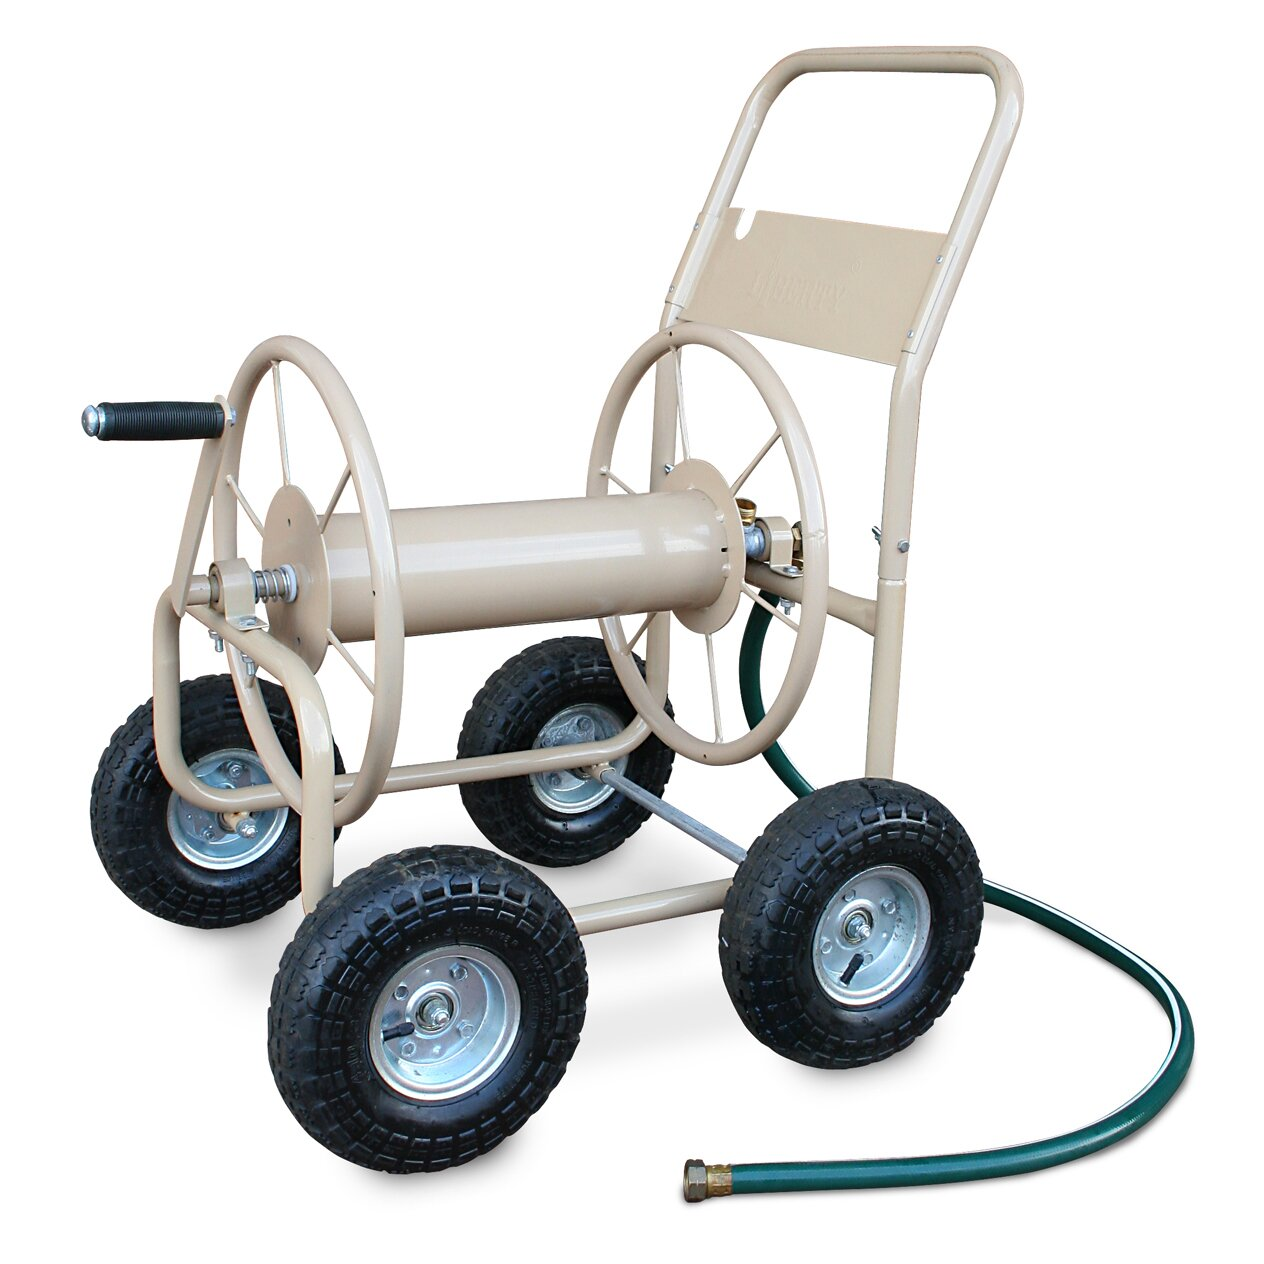 Liberty Garden Industrial 4 Wheel Hose Reel Cart Reviews Wayfair